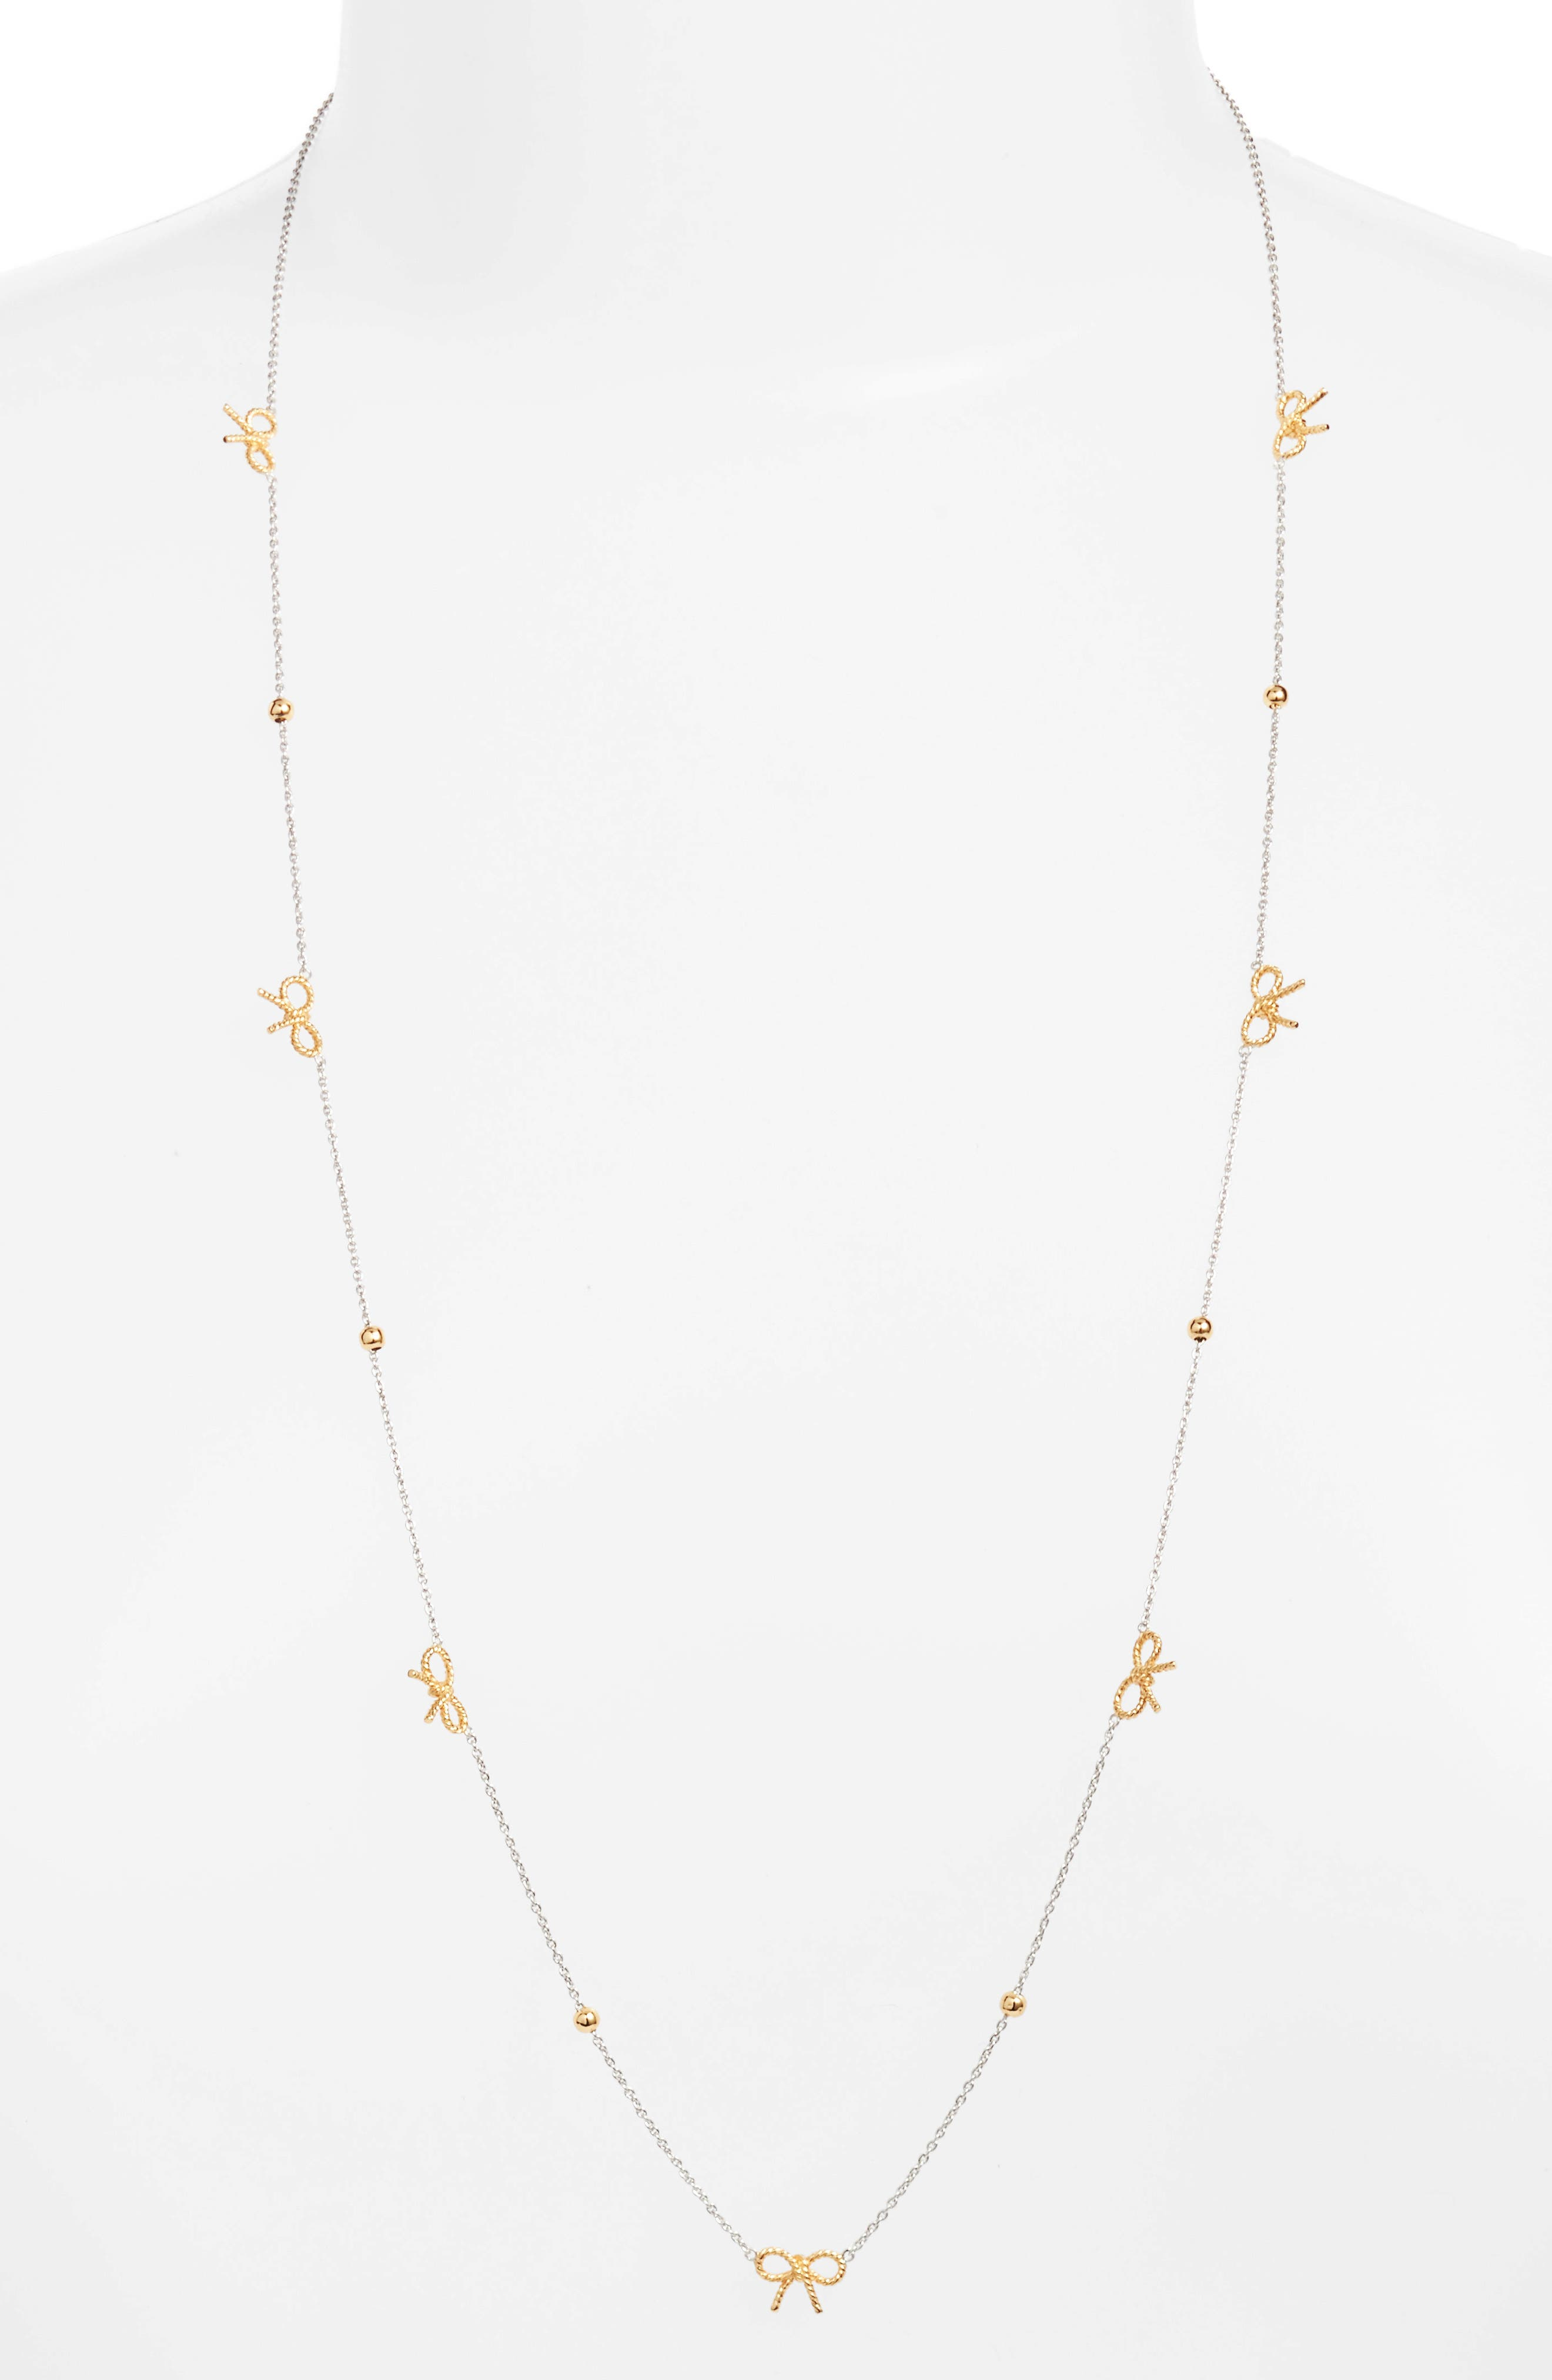 Bow Chain Necklace,                             Main thumbnail 1, color,                             Silver/ Gold